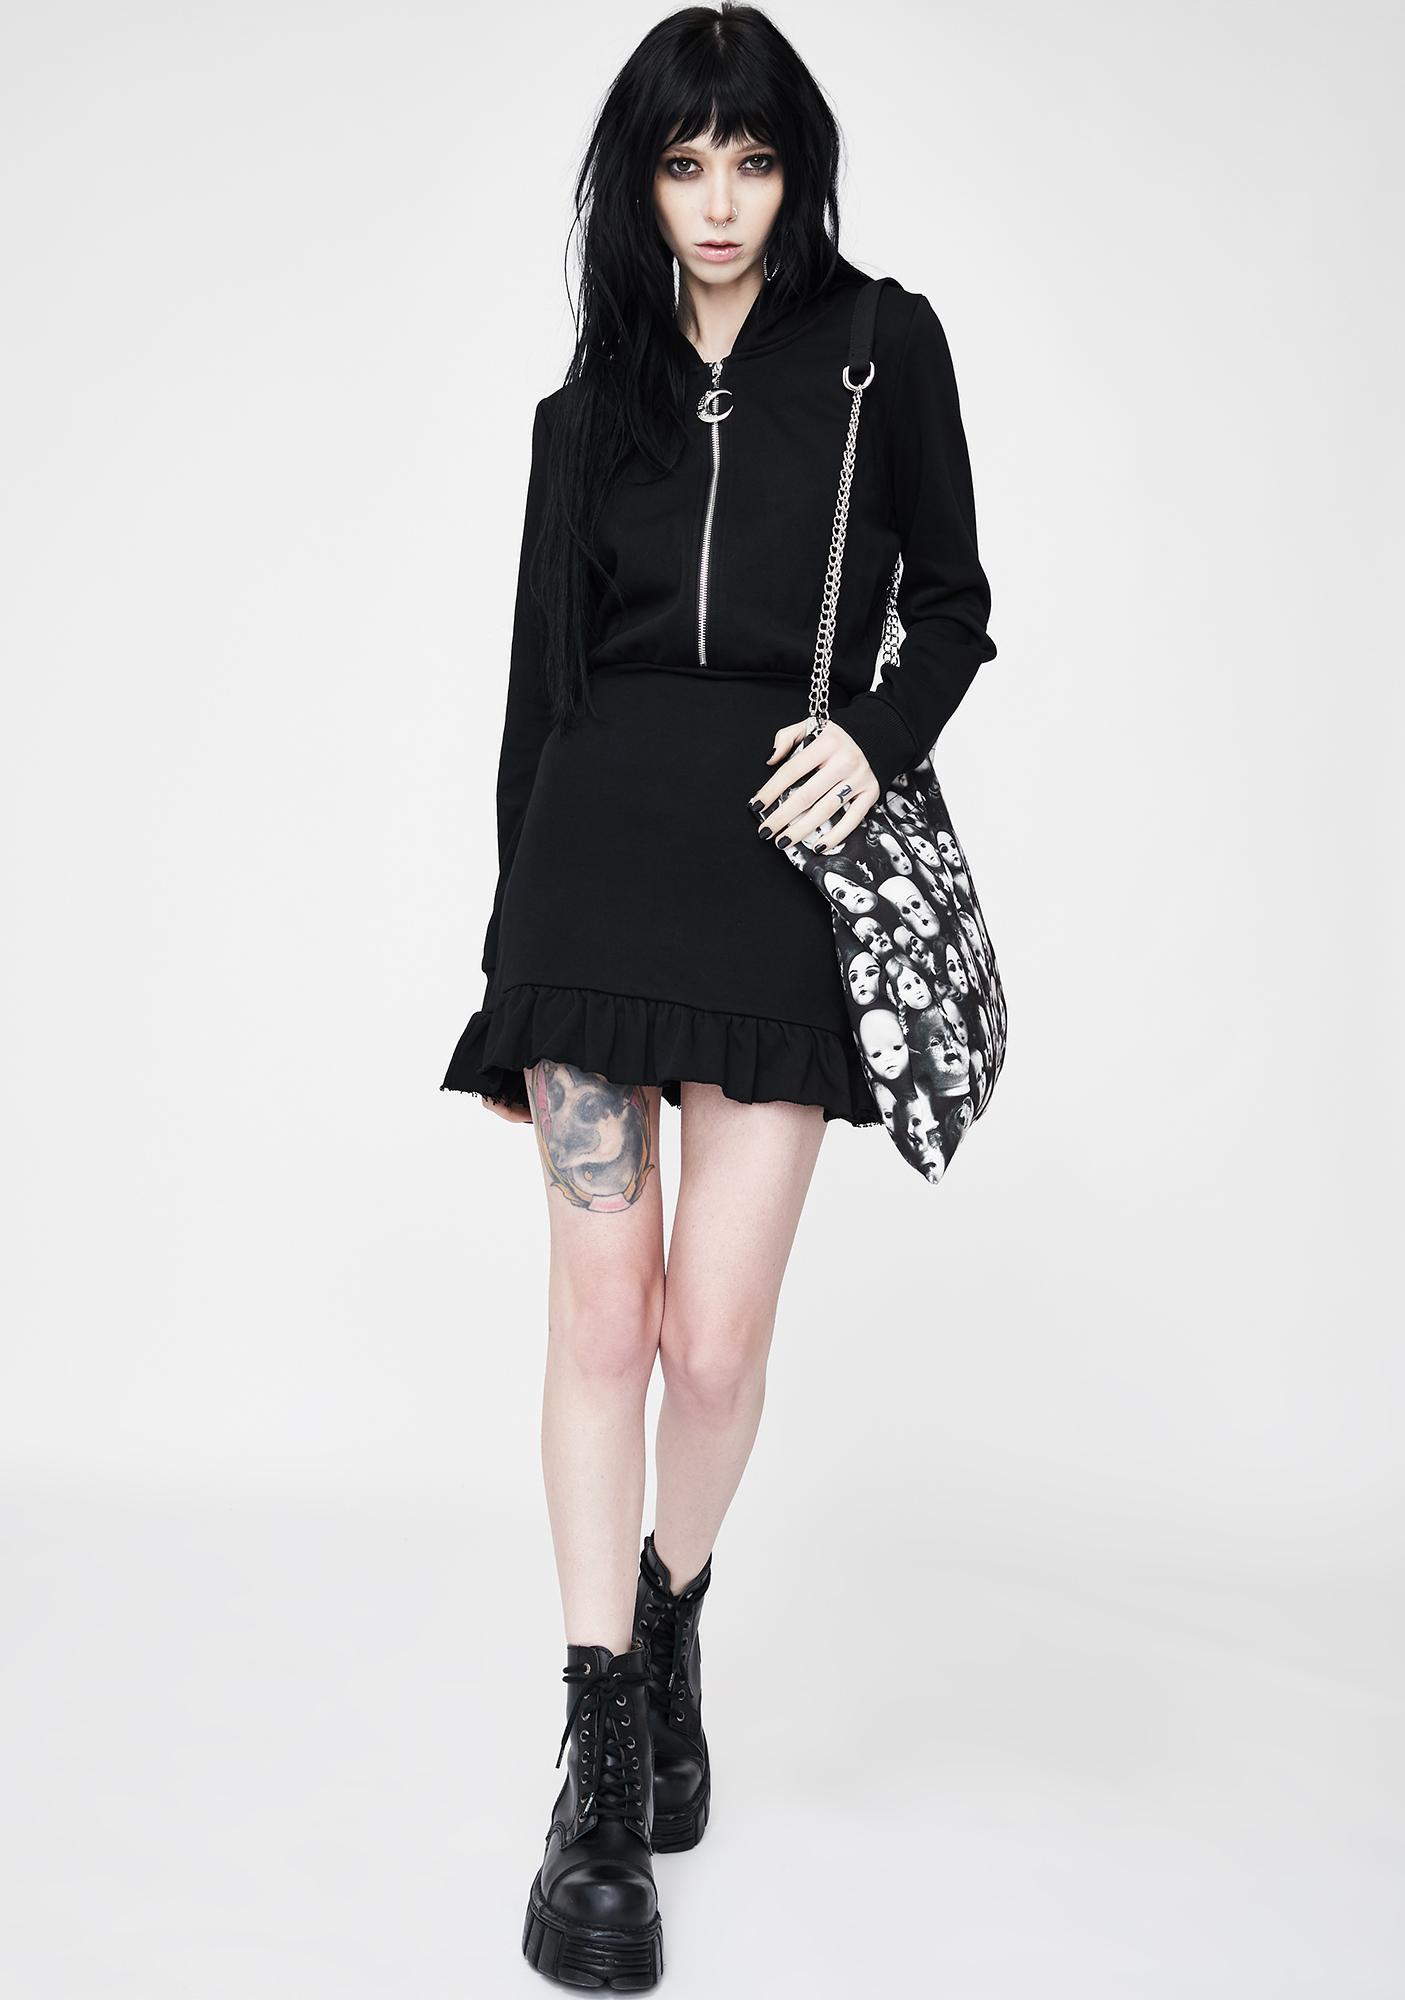 Punk Rave Dark Hooded Lotus Leaf Pendulum Dress